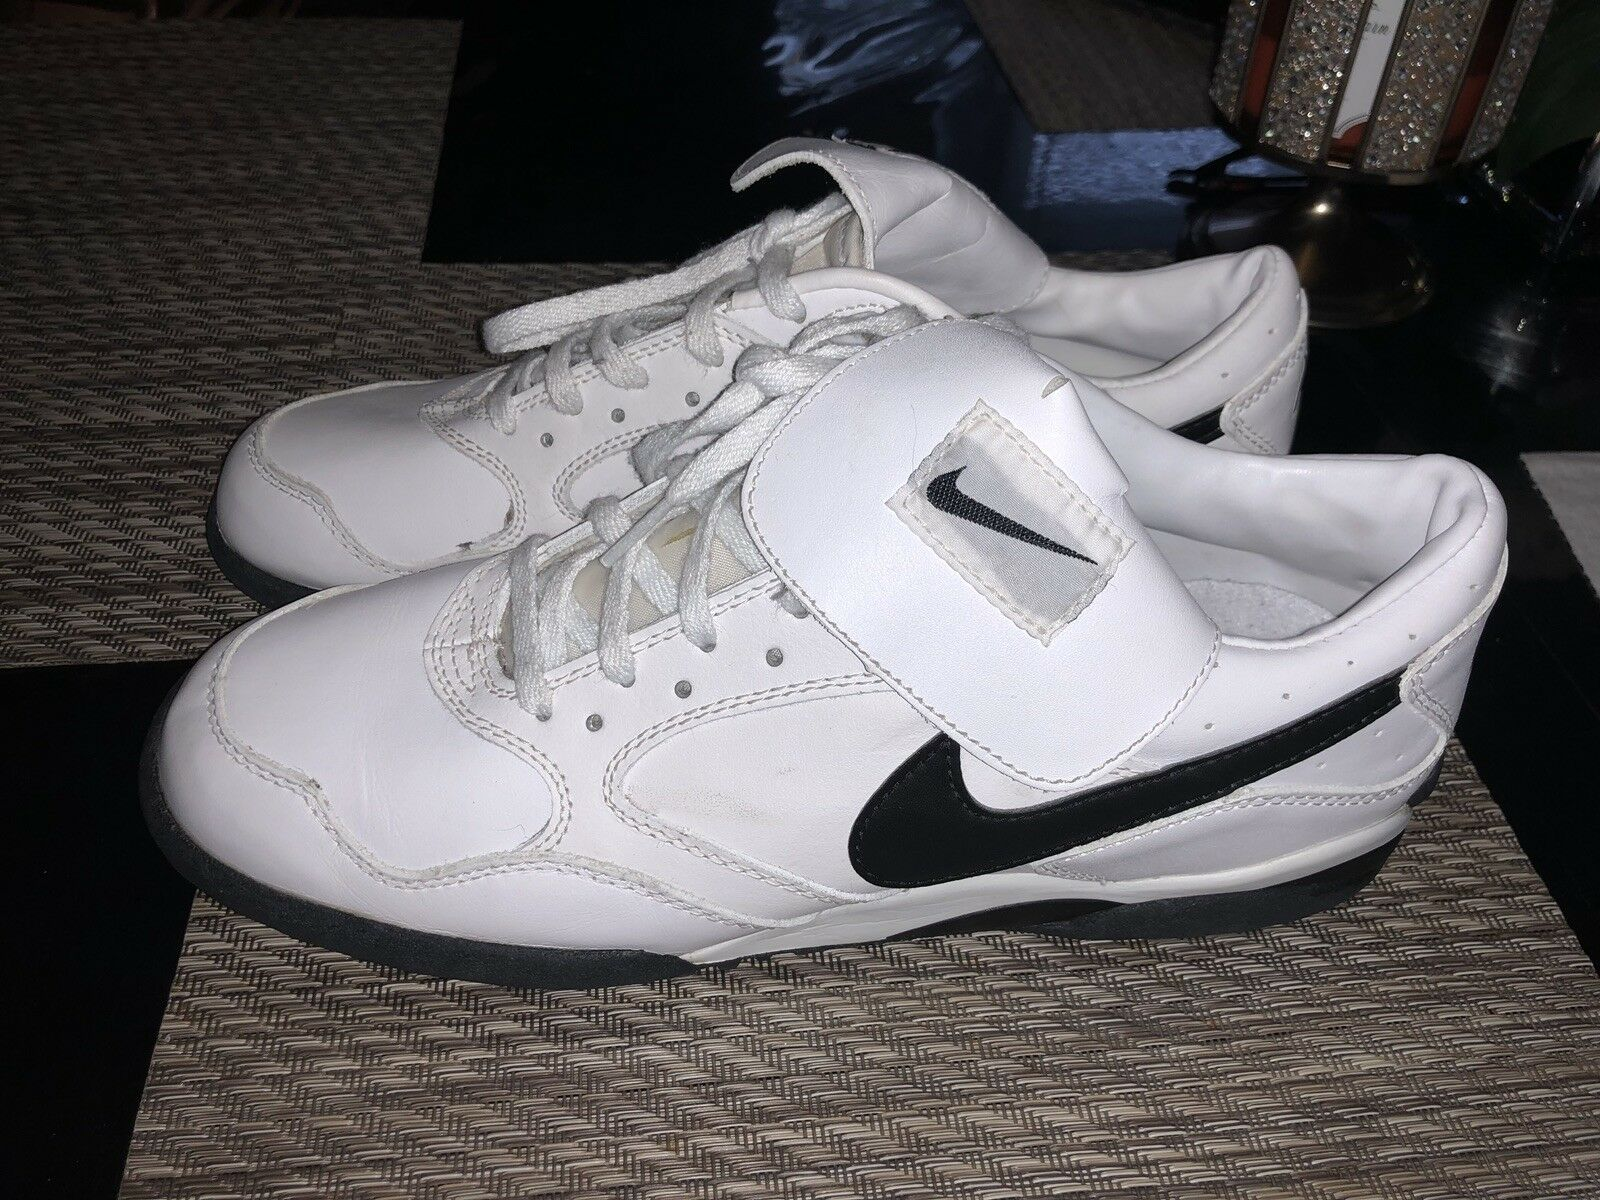 Super Rare 1995 Nike Air Mens 11 Golf Sneakers White & Black 521008